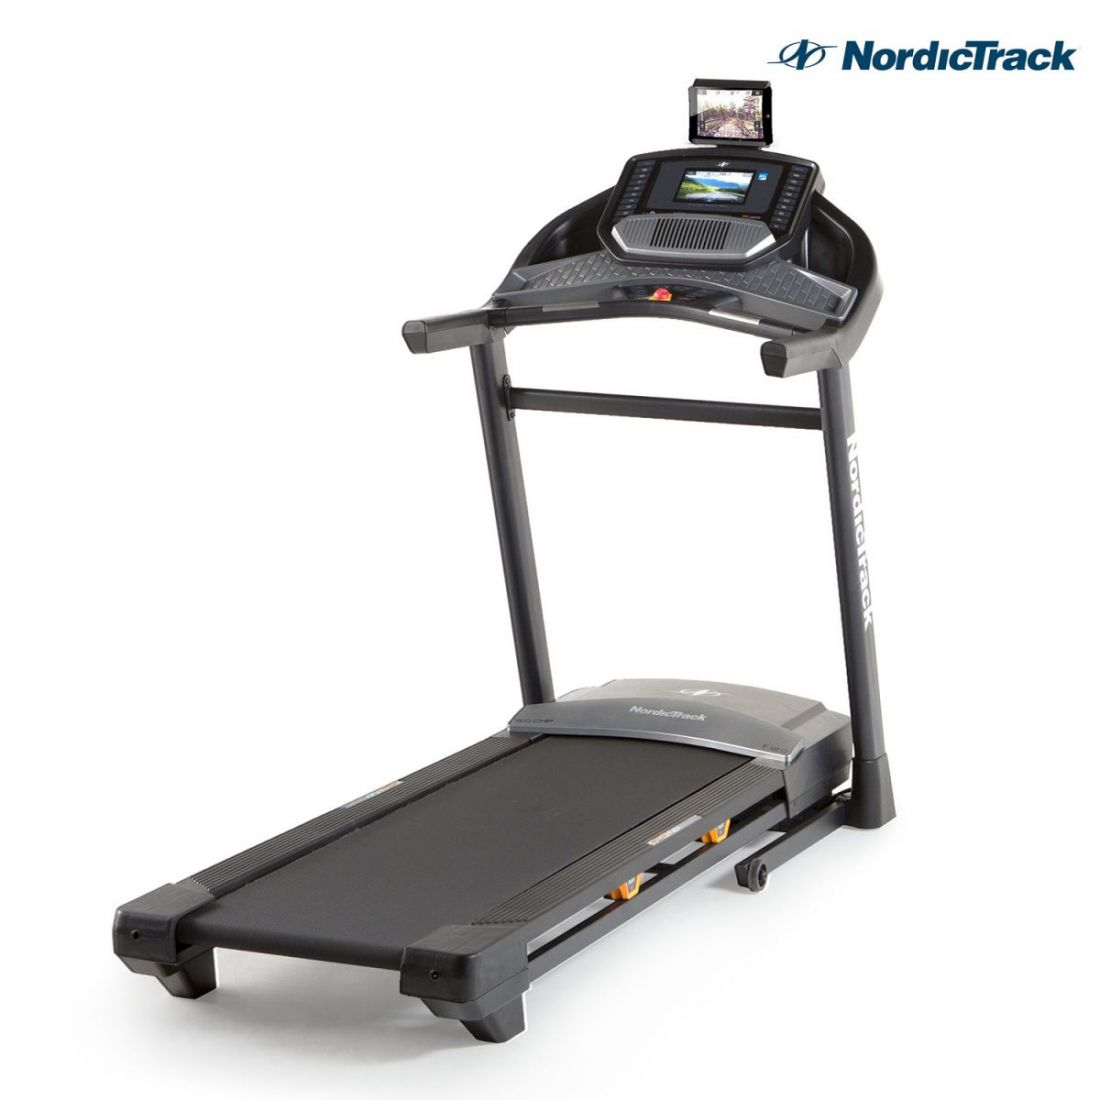 NordicTrack T12.0